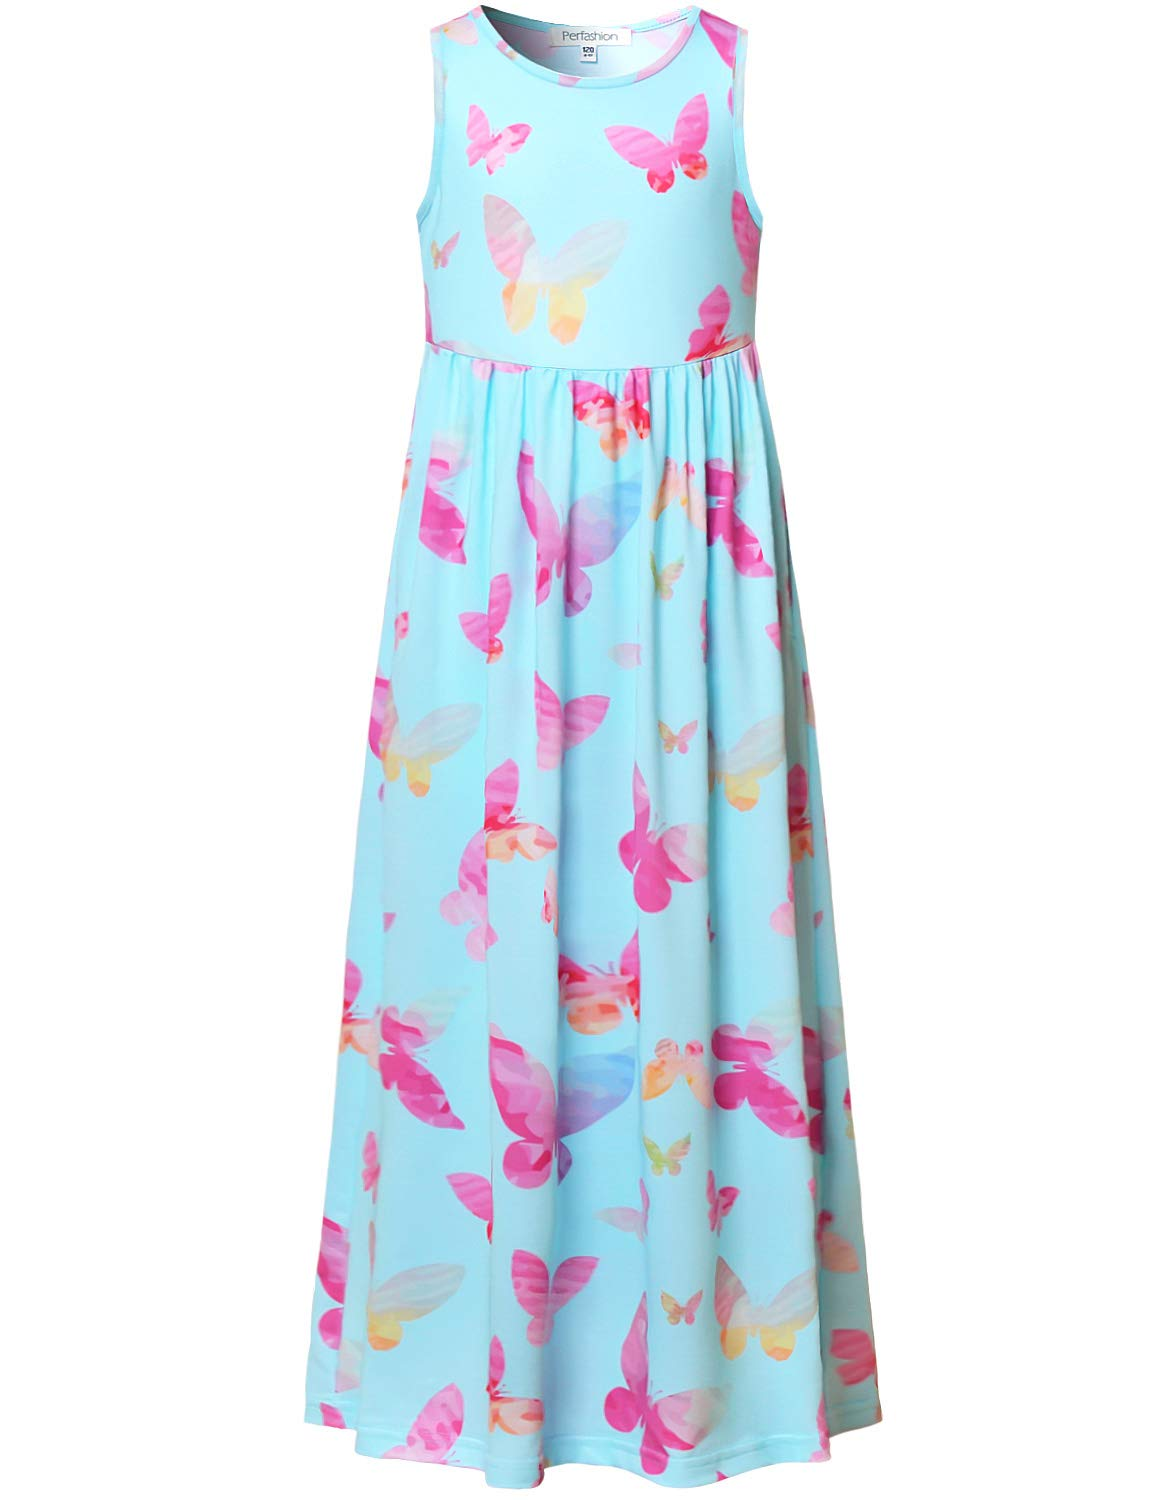 Perfashion Girl's Dress Long Maxi Summer Floral Birthday Party Sleeveless Print Dresses with Pockets